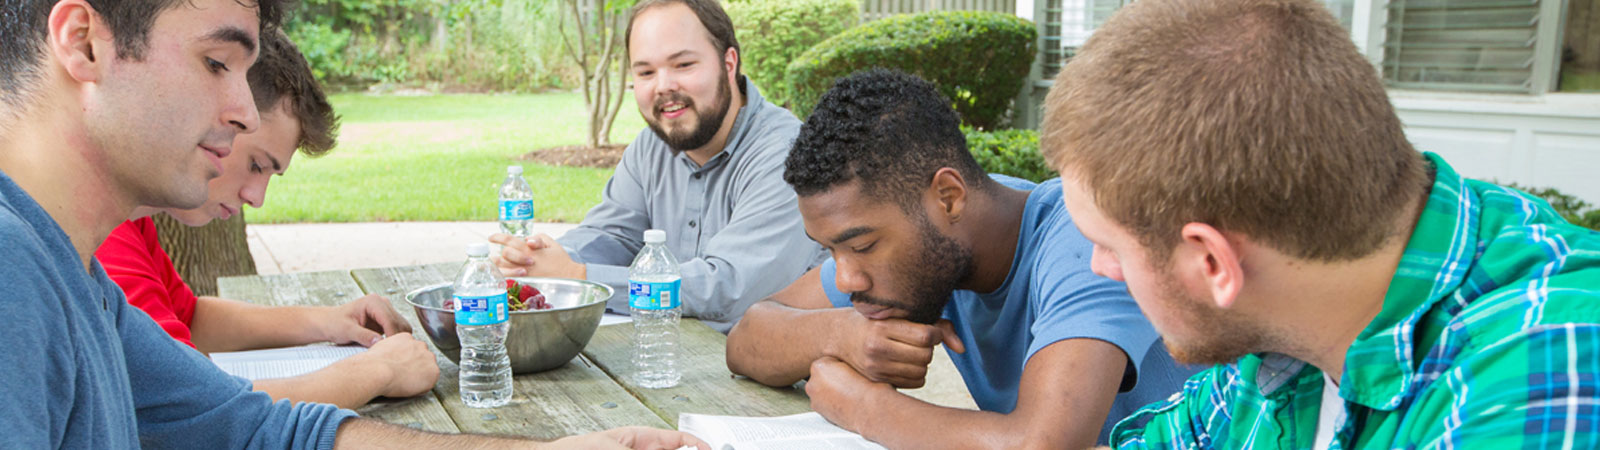 Rosecrance recovery students studying outside